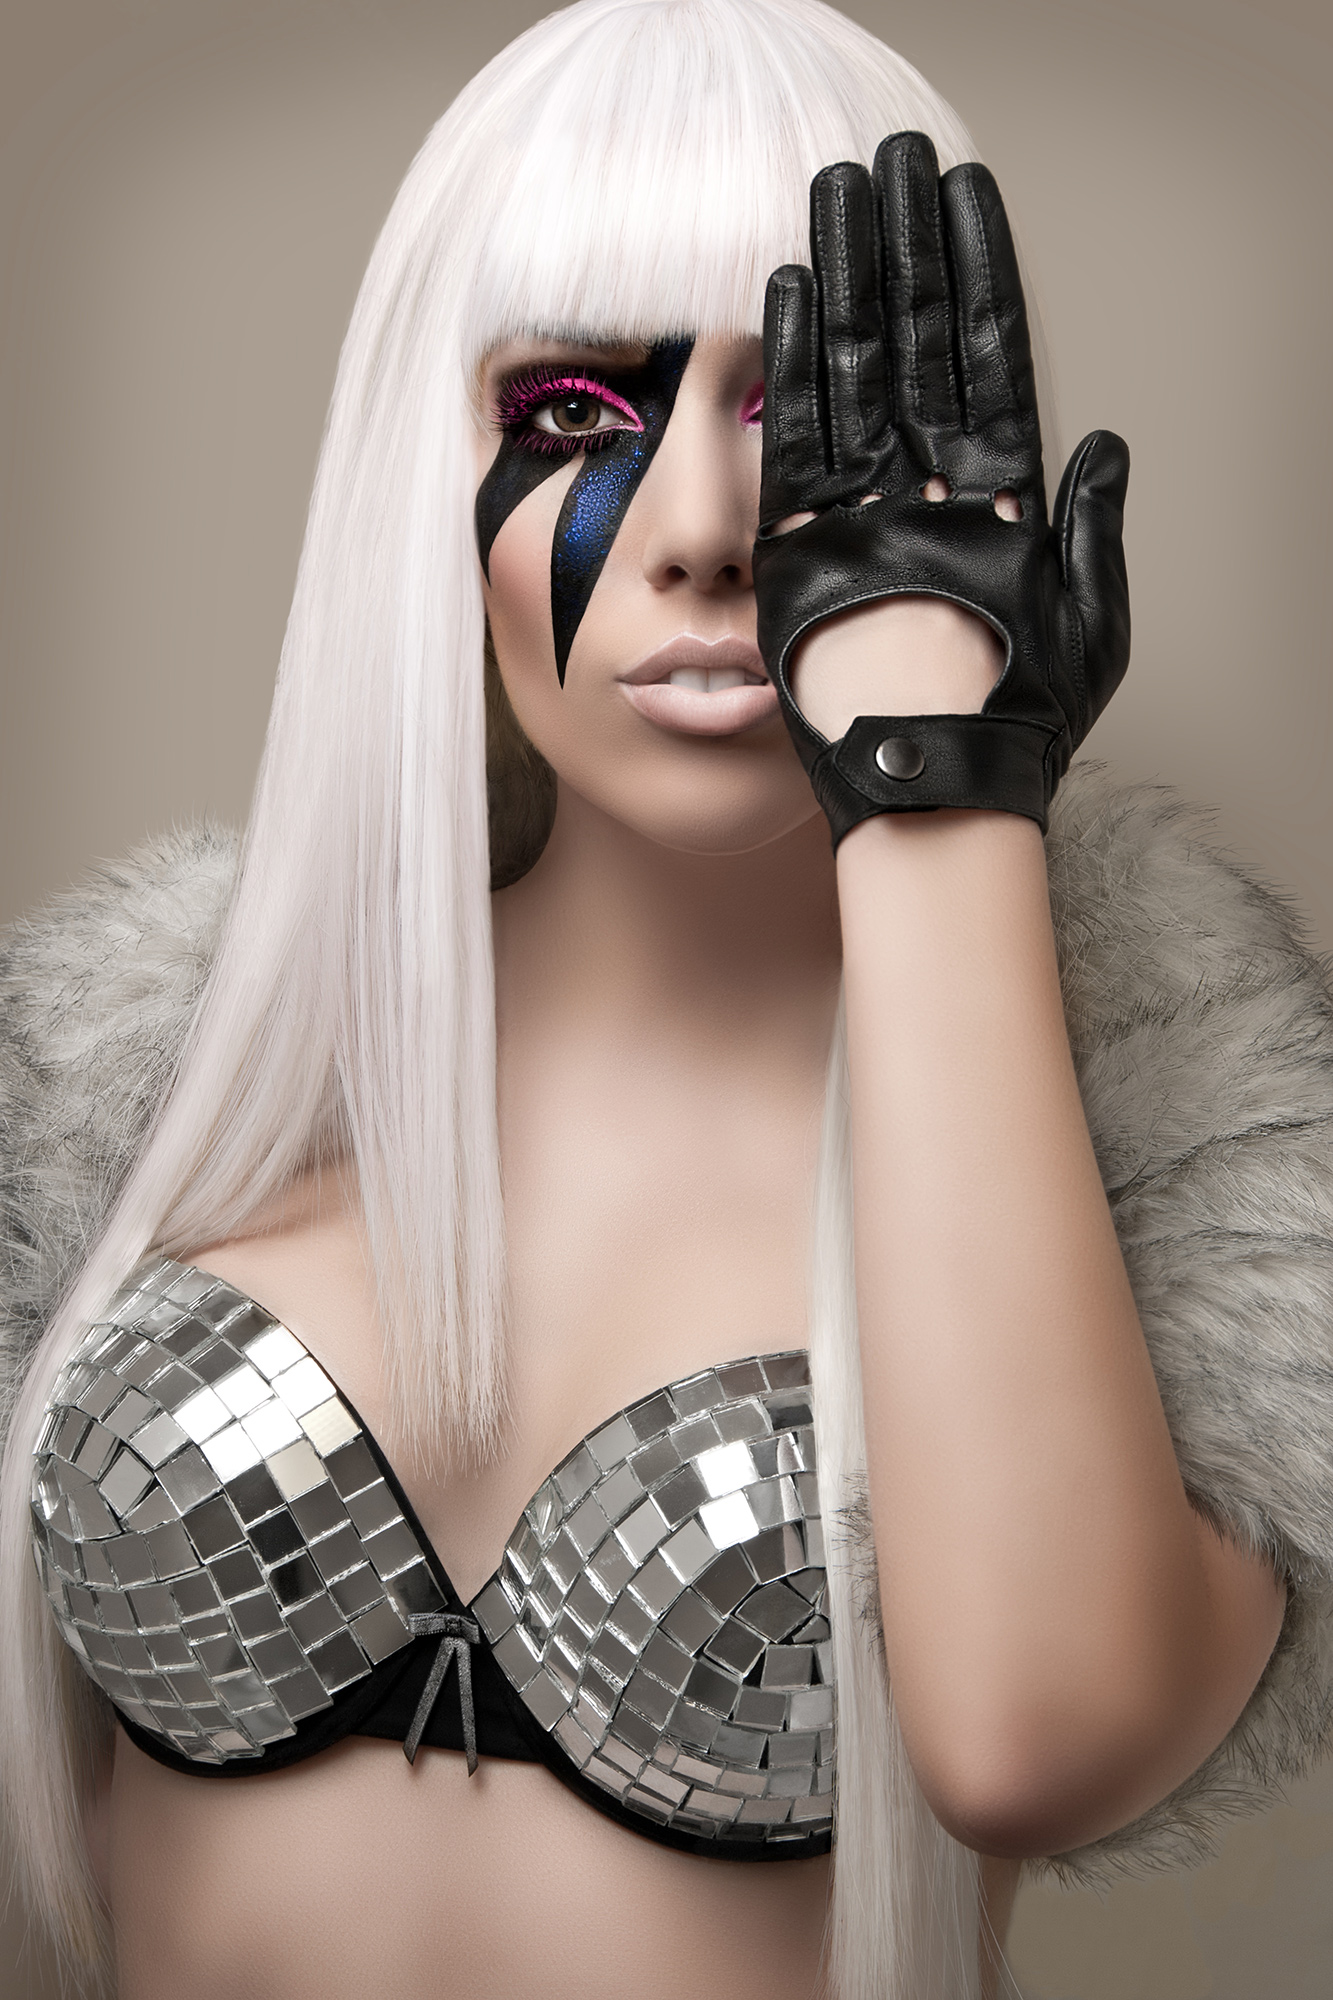 Lady Gaga shooting